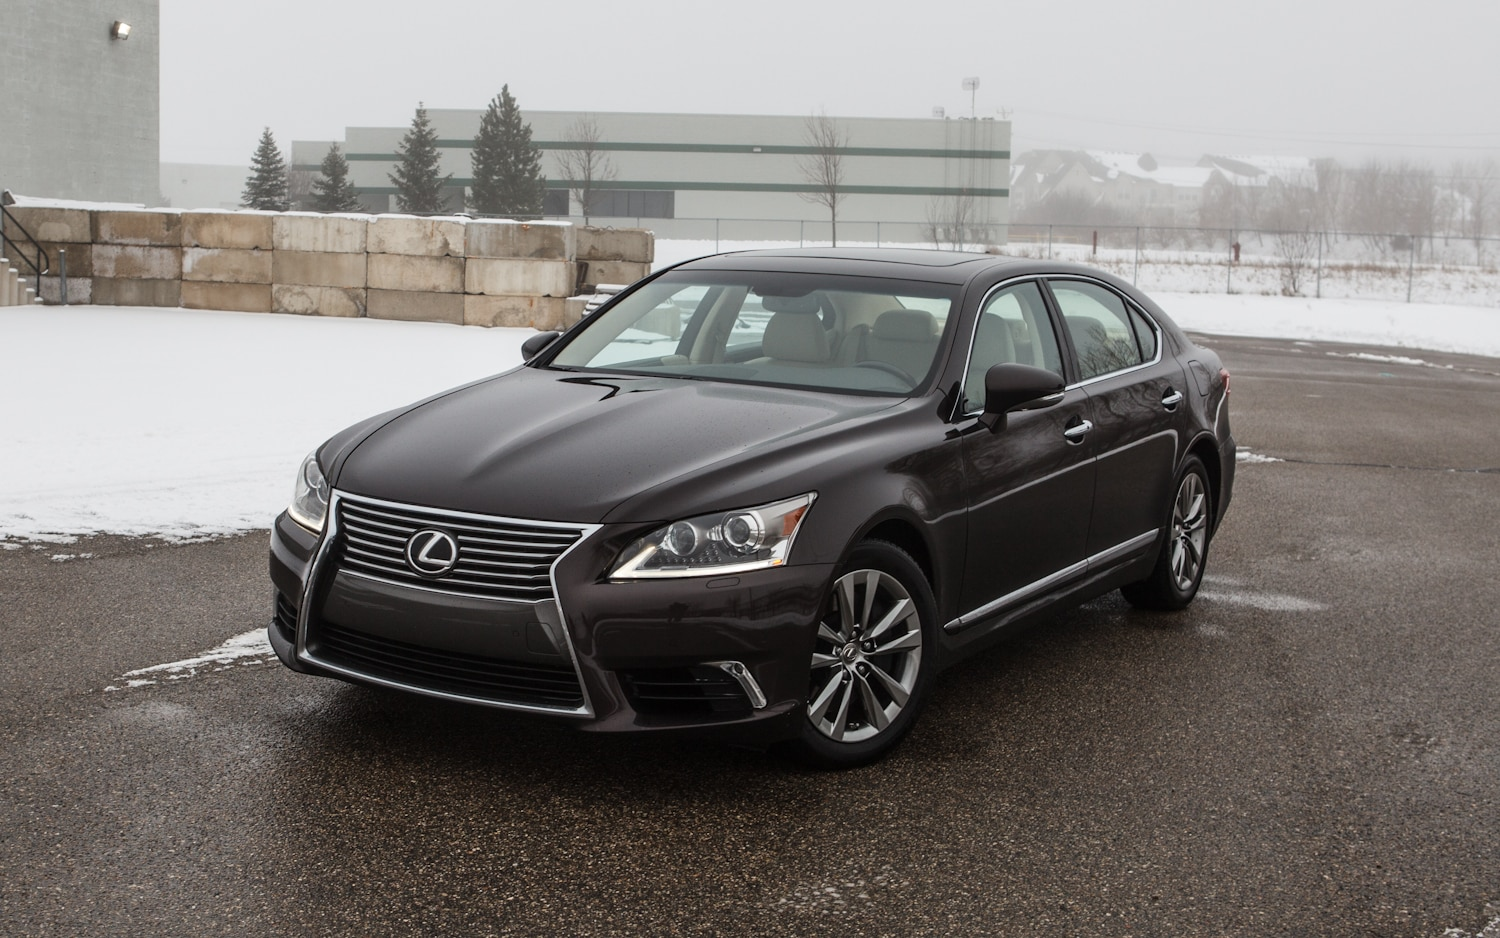 2013 Lexus LS460L AWD Front Left View 11